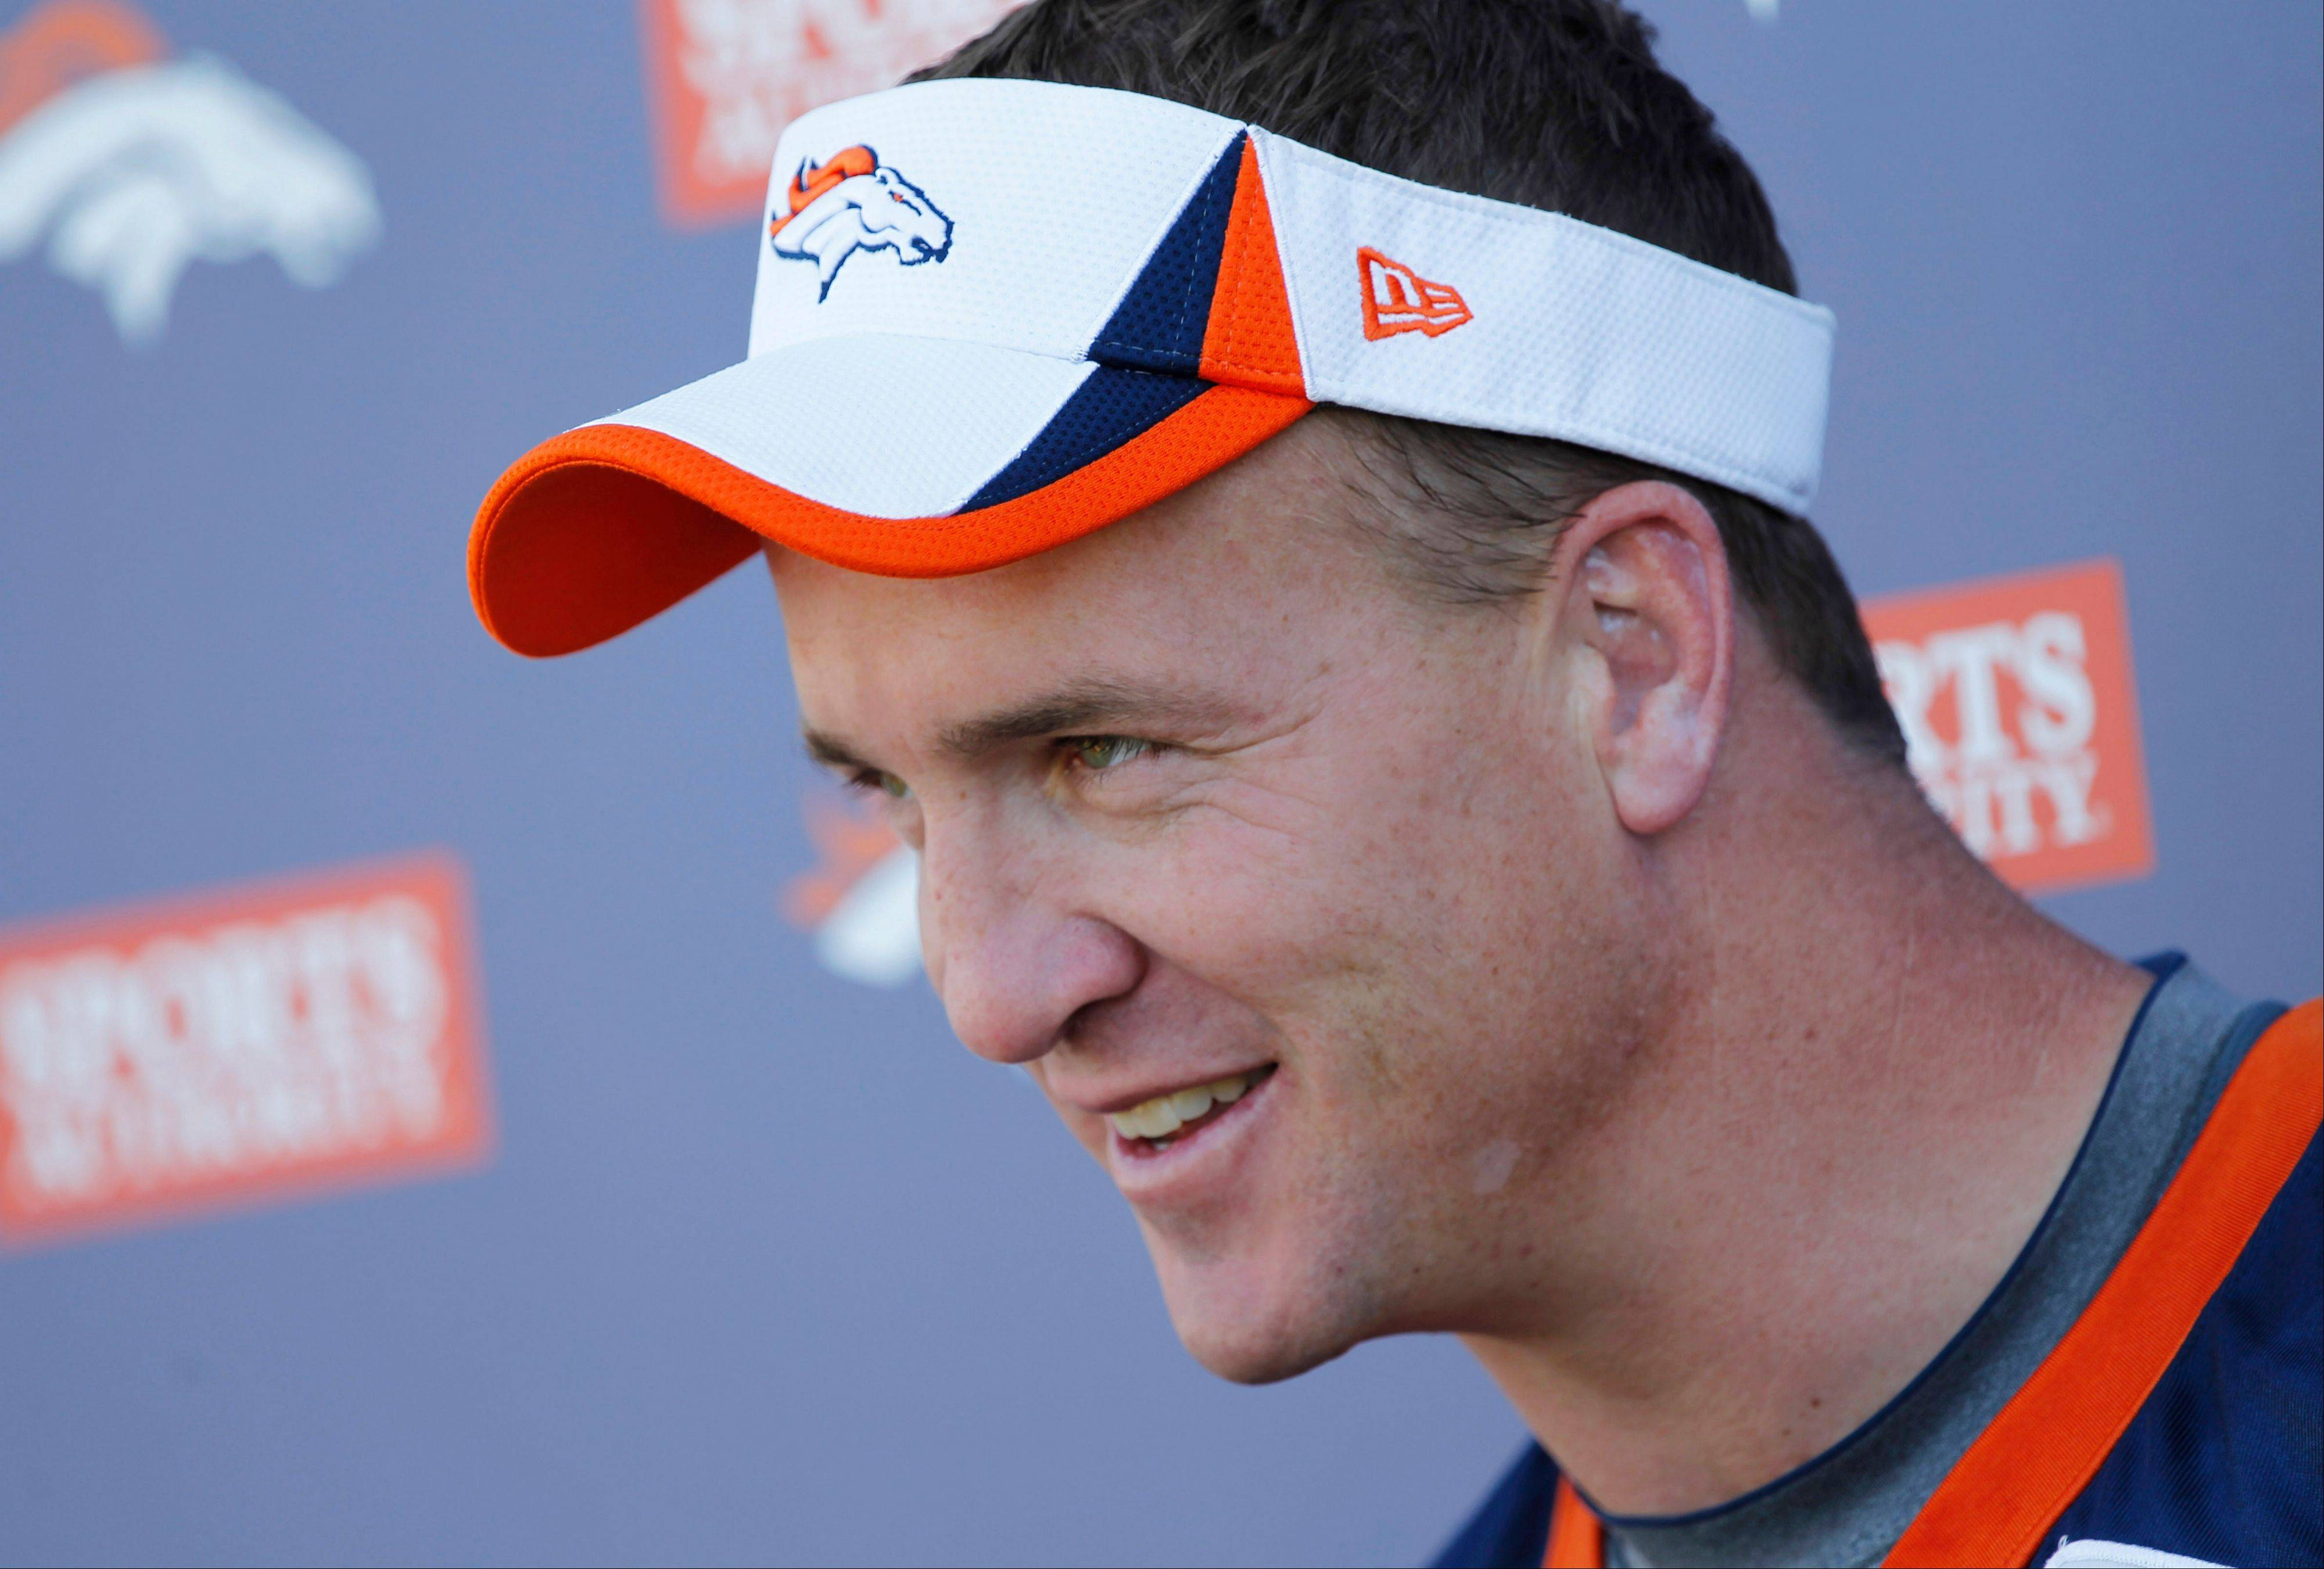 Denver Broncos starting quarterback Peyton Manning jokes with reporters after taking part in the morning session at the team's NFL training camp in Englewood, Colo., on Tuesday, Aug. 6, 2013.